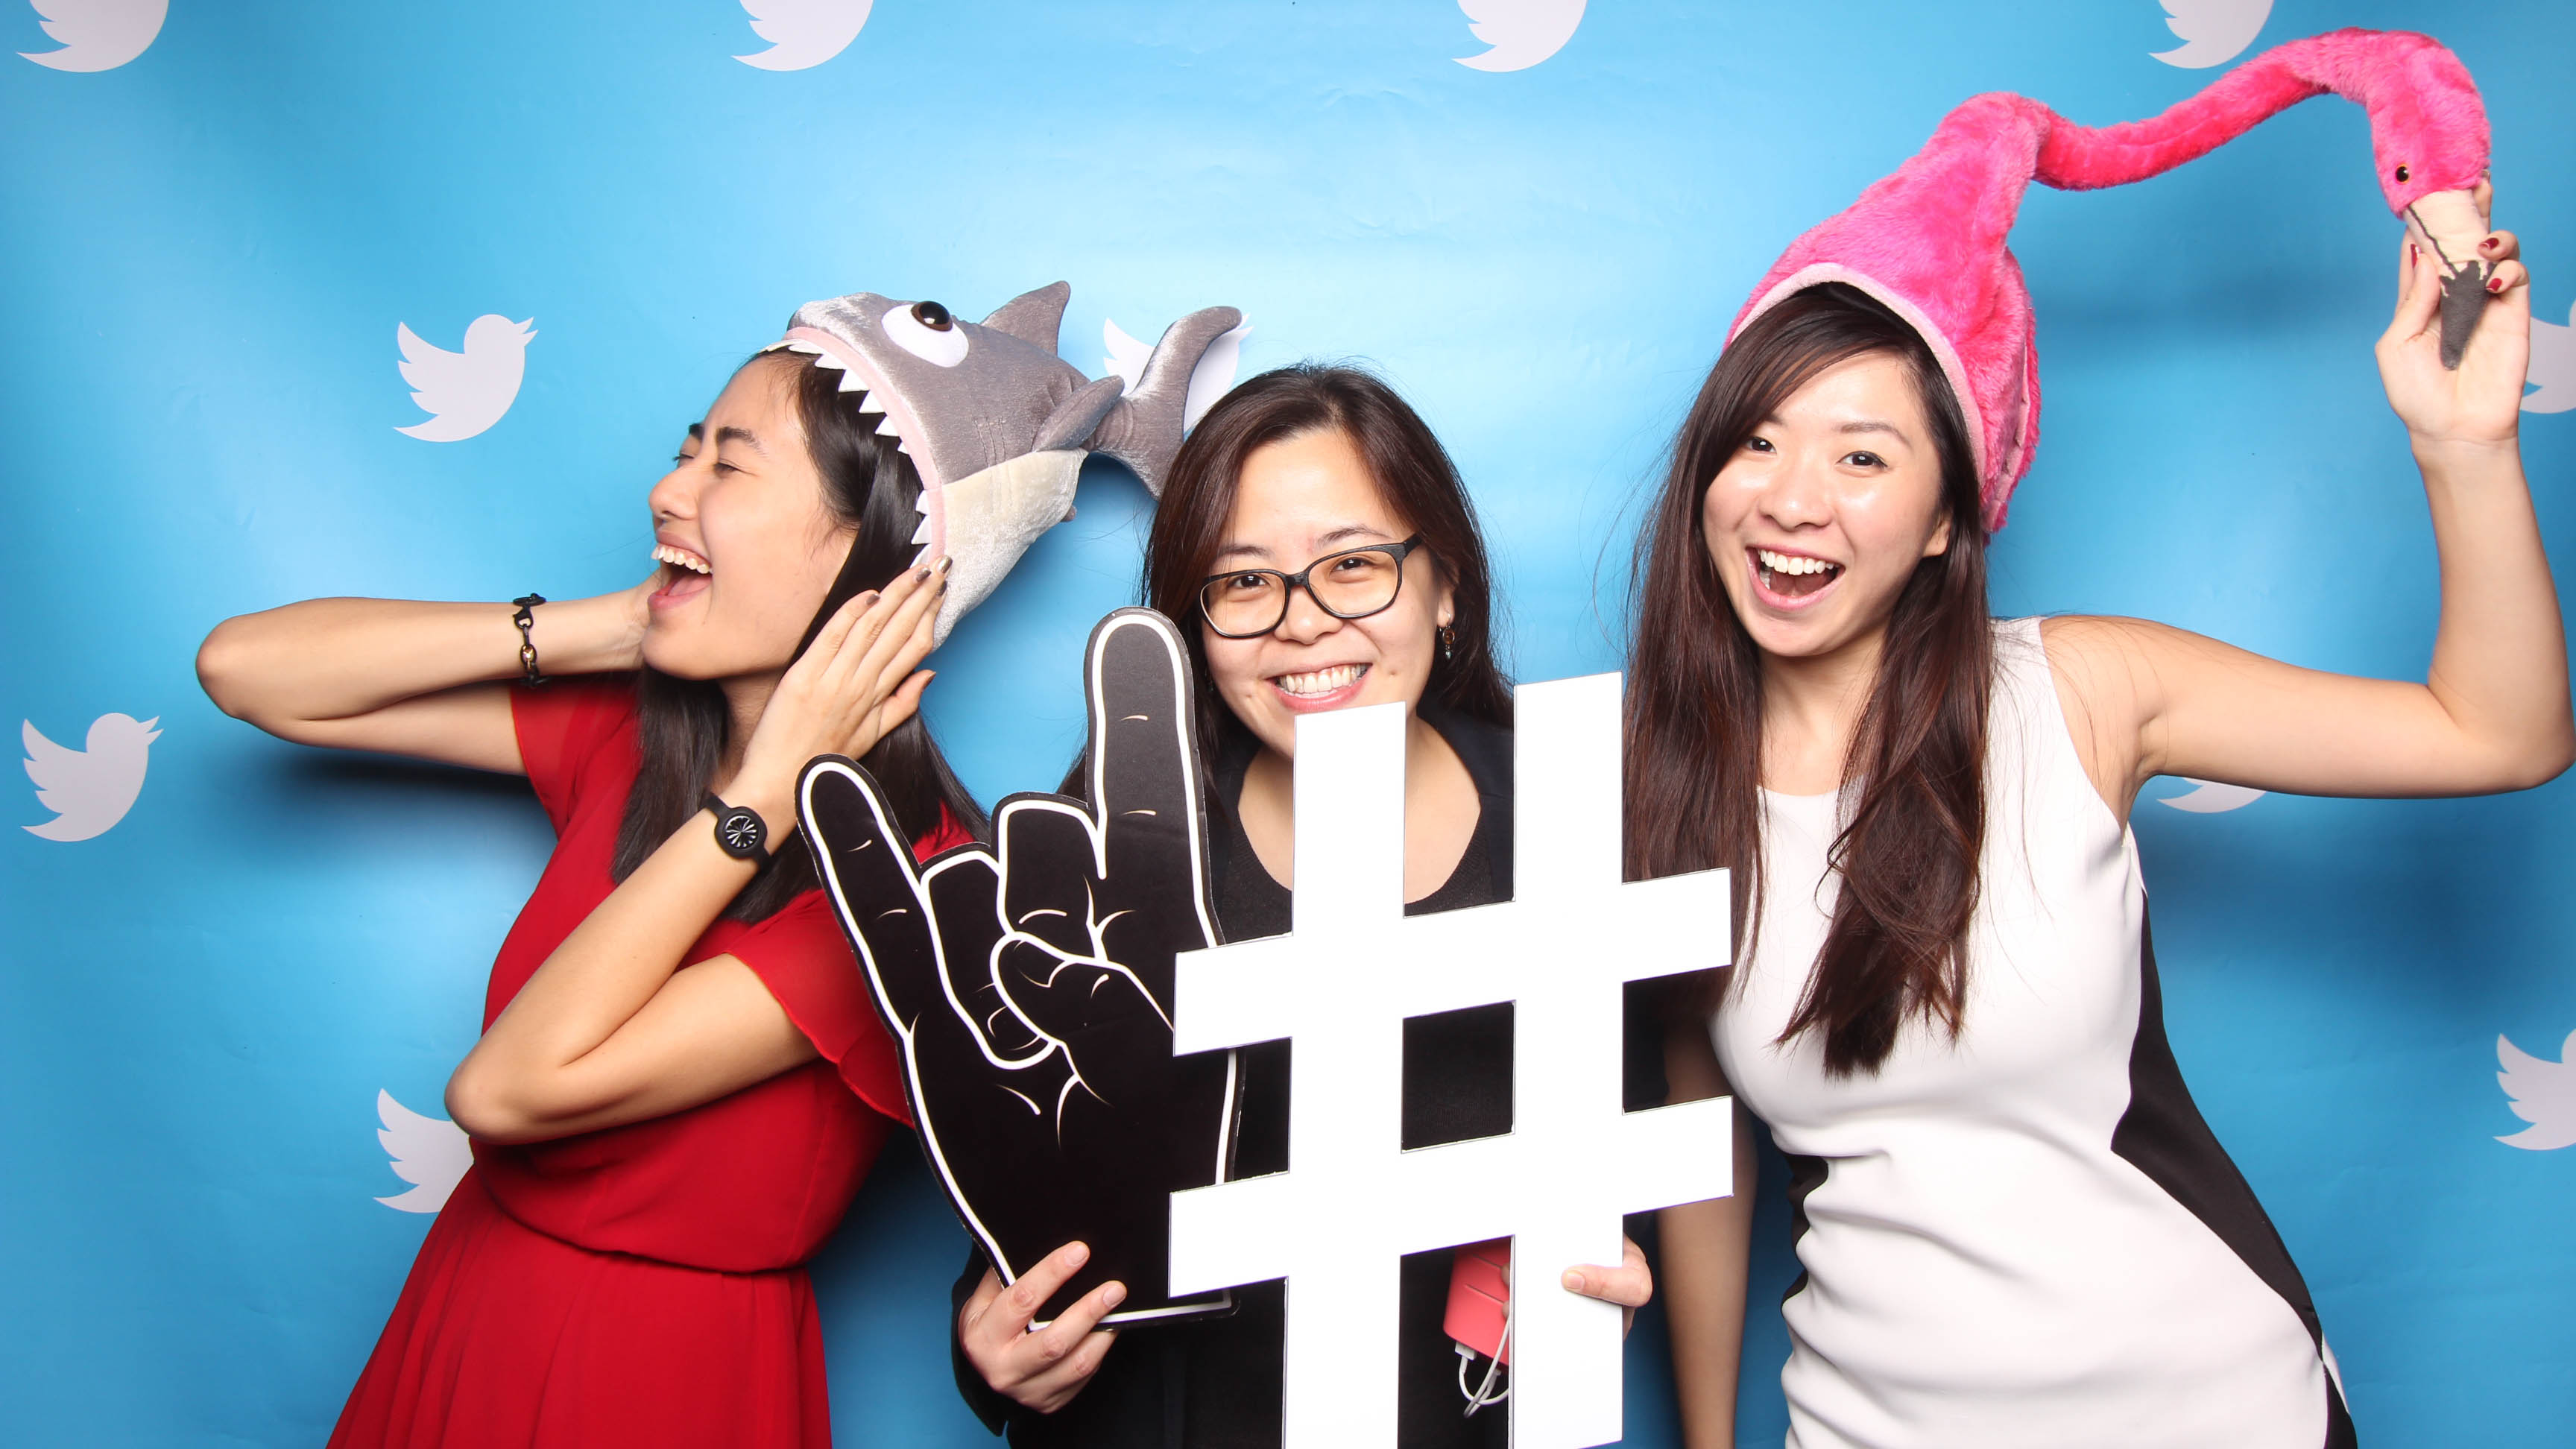 Fourstops • Singapore Photobooth • Twitter Singapore Home4Good Corporate Photobooth